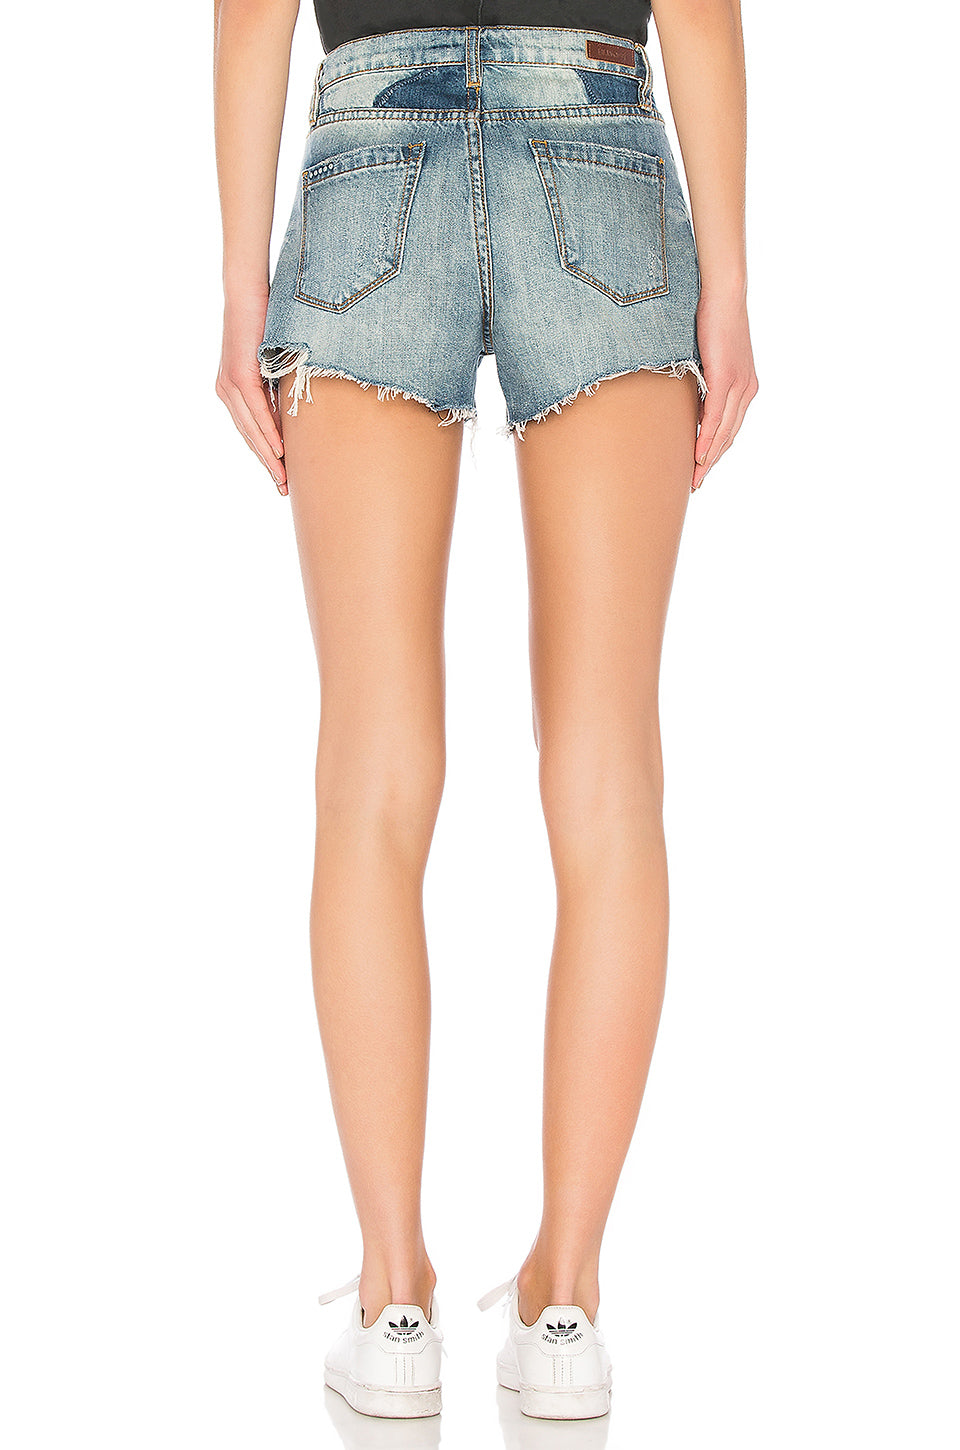 Blank NYC Push Play Cut off Jean Shorts